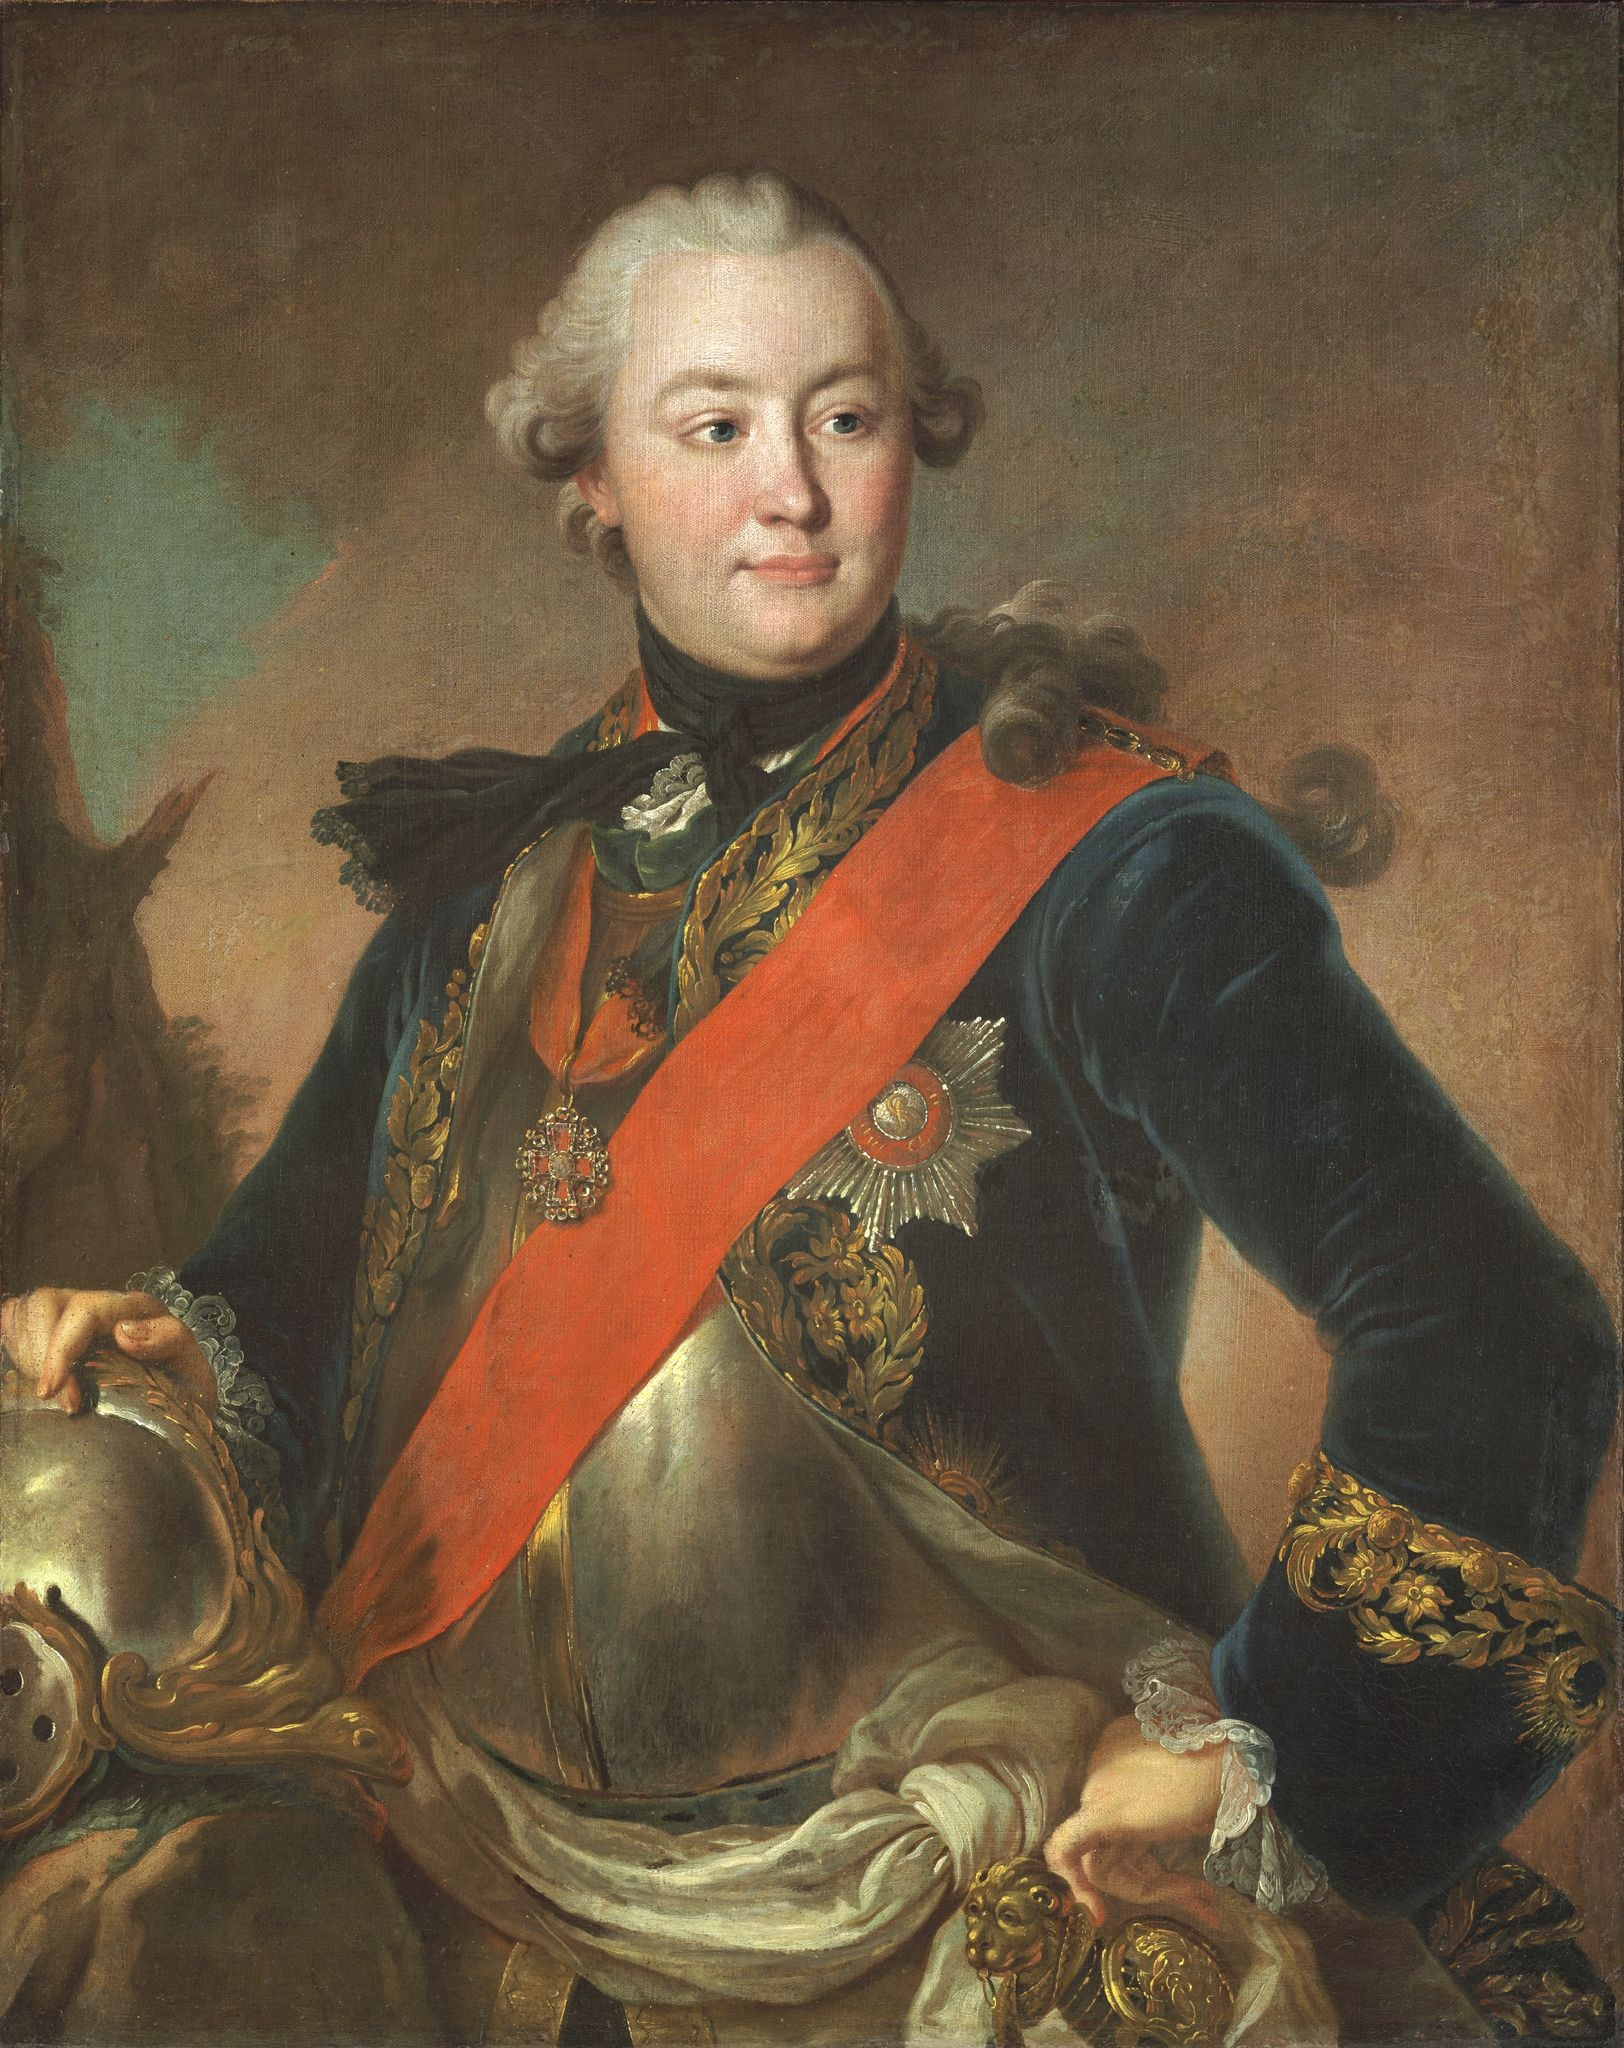 Grigory Orlov, one of the leaders of the coup. Portrait by Theodore Rokotoff, 1762-1763.